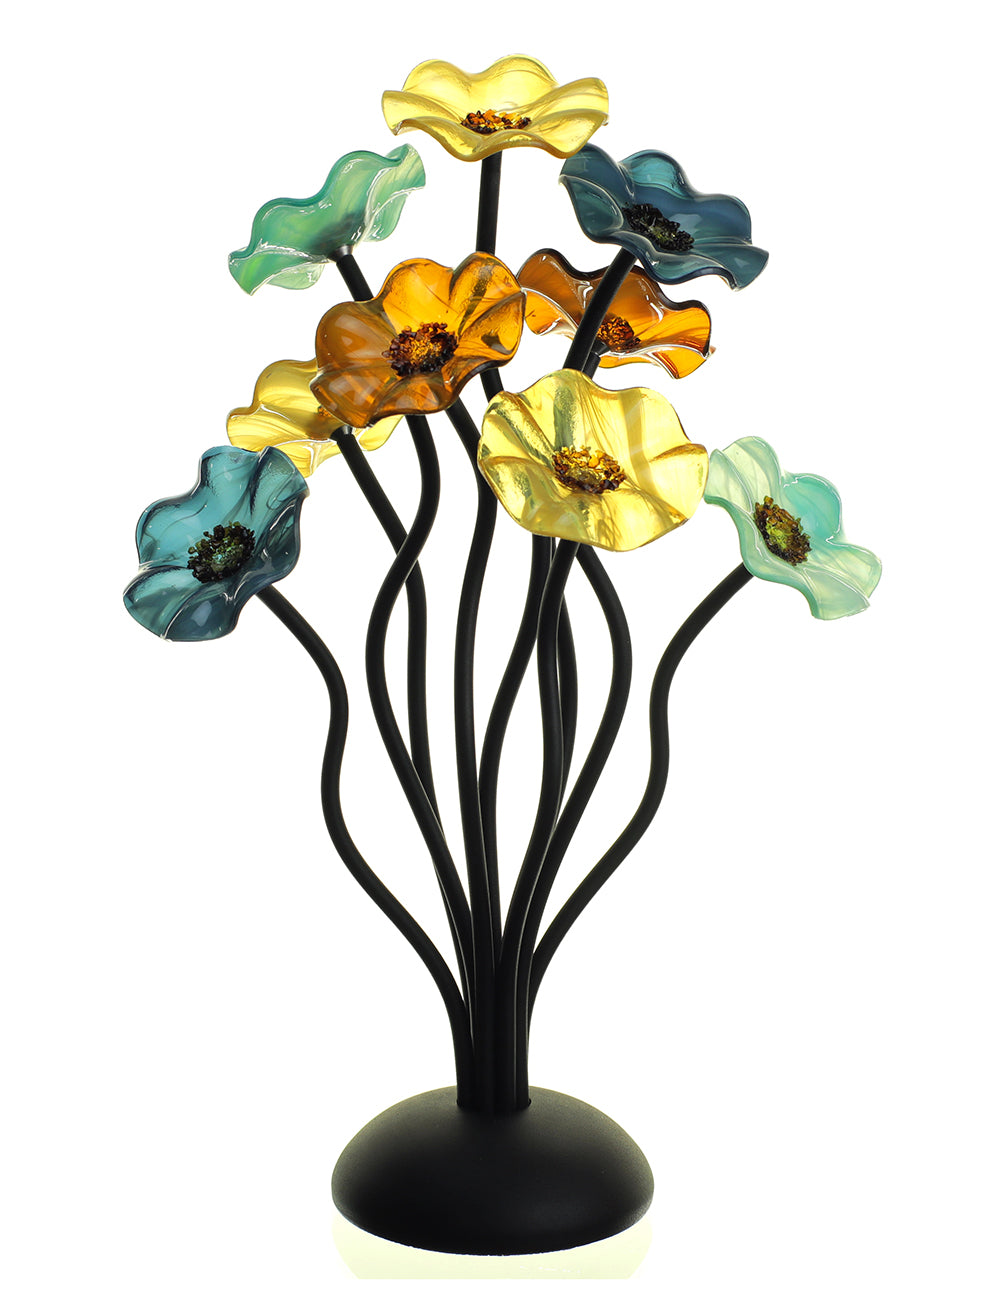 9 flower Sundrella - Glass Flowers by Scott Johnson